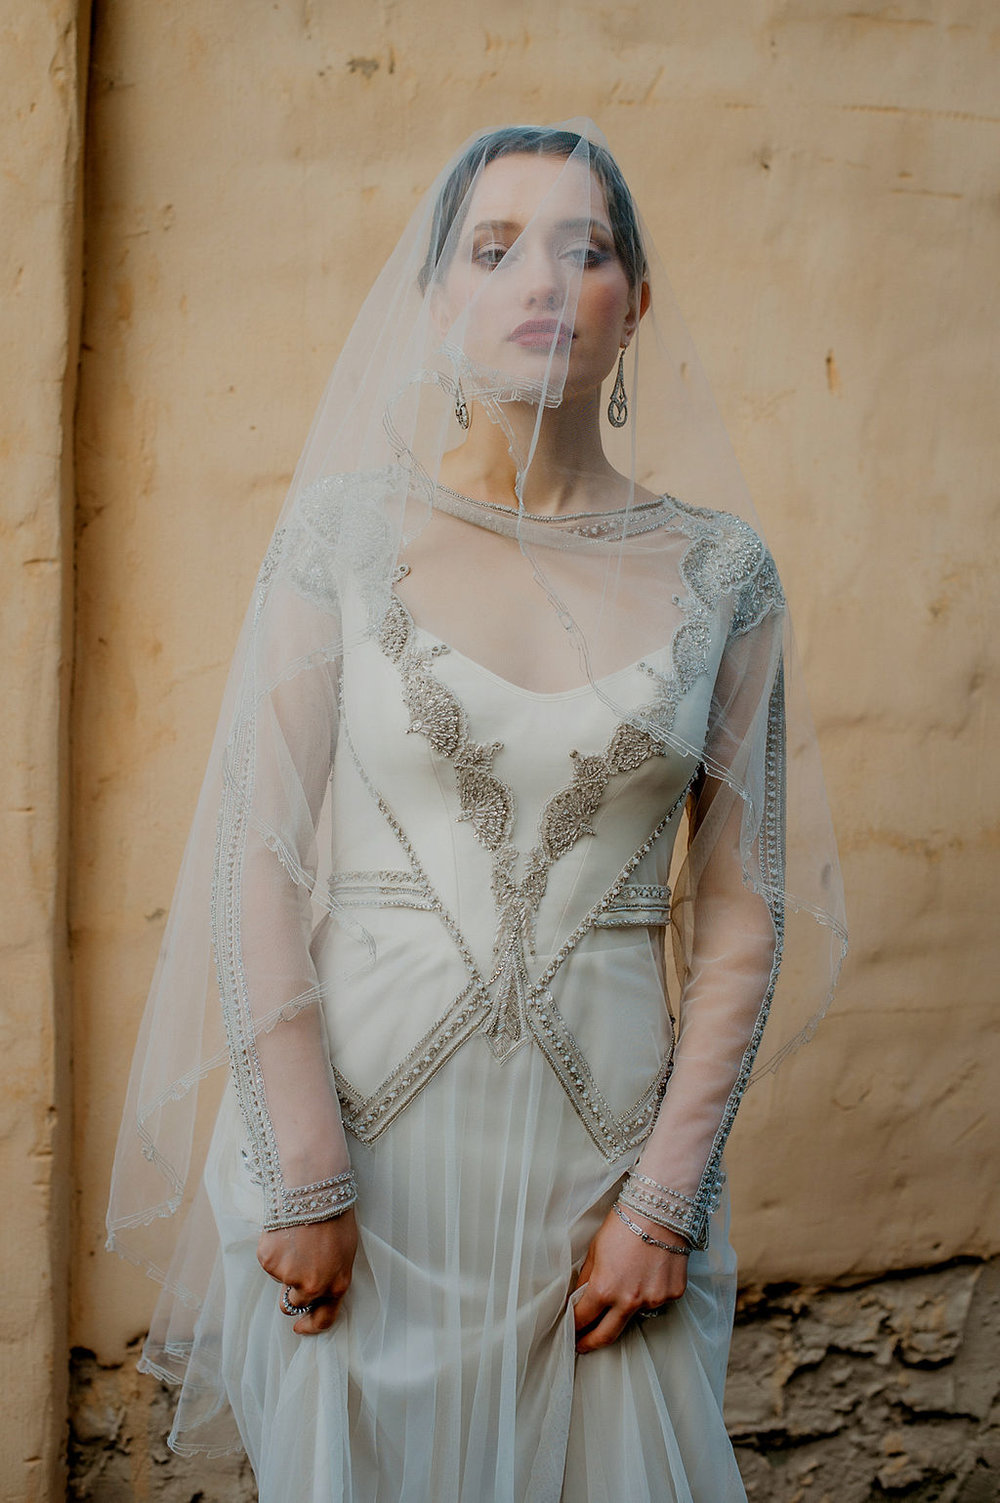 Emma+Gwendolynne+Wedding+Dress++JessicaAbbyartdecoWEB-9424.jpg